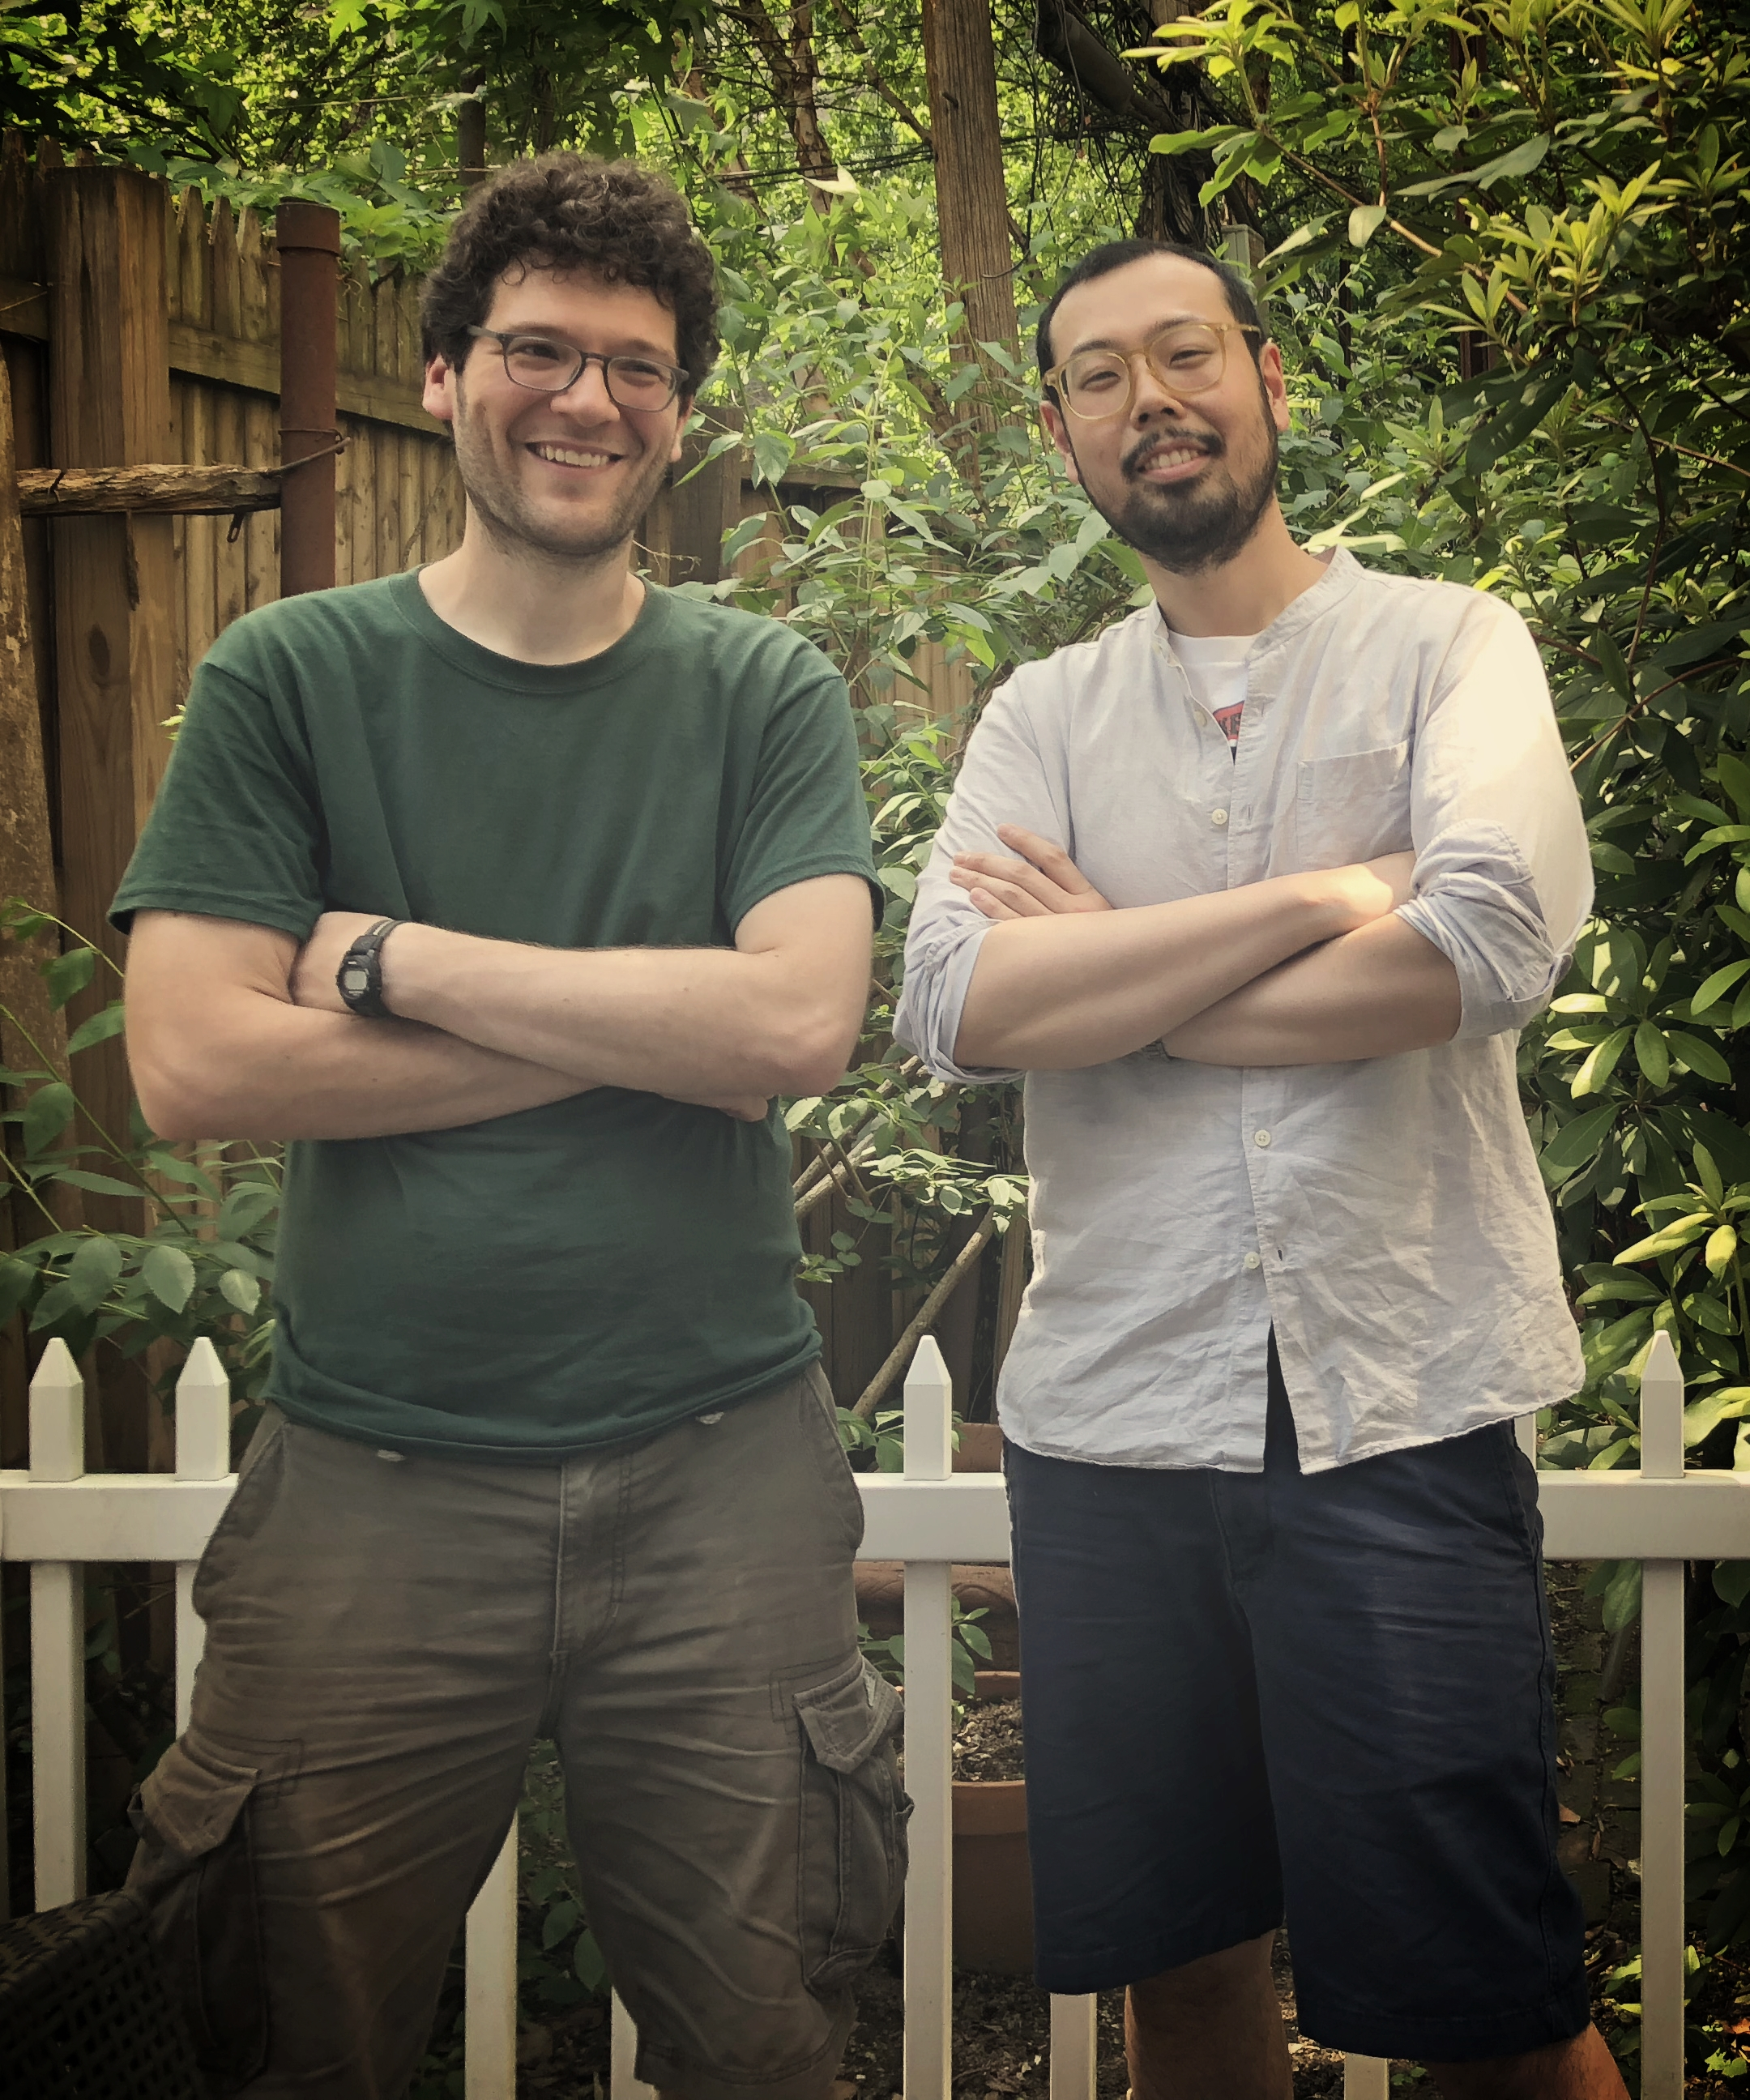 - My name is Yusuke Namiki and I am a special education teacher in NYC. My partner and good friend, Bob Paradiso, is a computer and hardware engineer customizing hardware and software for people with special needs.In February of 2018, Bob and I created Access Redefined LLC. From research and development through the necessary iterative processes for safety and functionality, we have been following our own vision to create advanced customizations with limitless possibilities in the field of assistive technology.As Access Redefined, our mission is to challenge the idea that there are limits to what people in the adaptive needs community can access. Access Redefined pledges to make every attempt to make anything universally accessible through eye gaze, haptic switches, motion detection, voice recognition or whatever innovative wizardry is required.